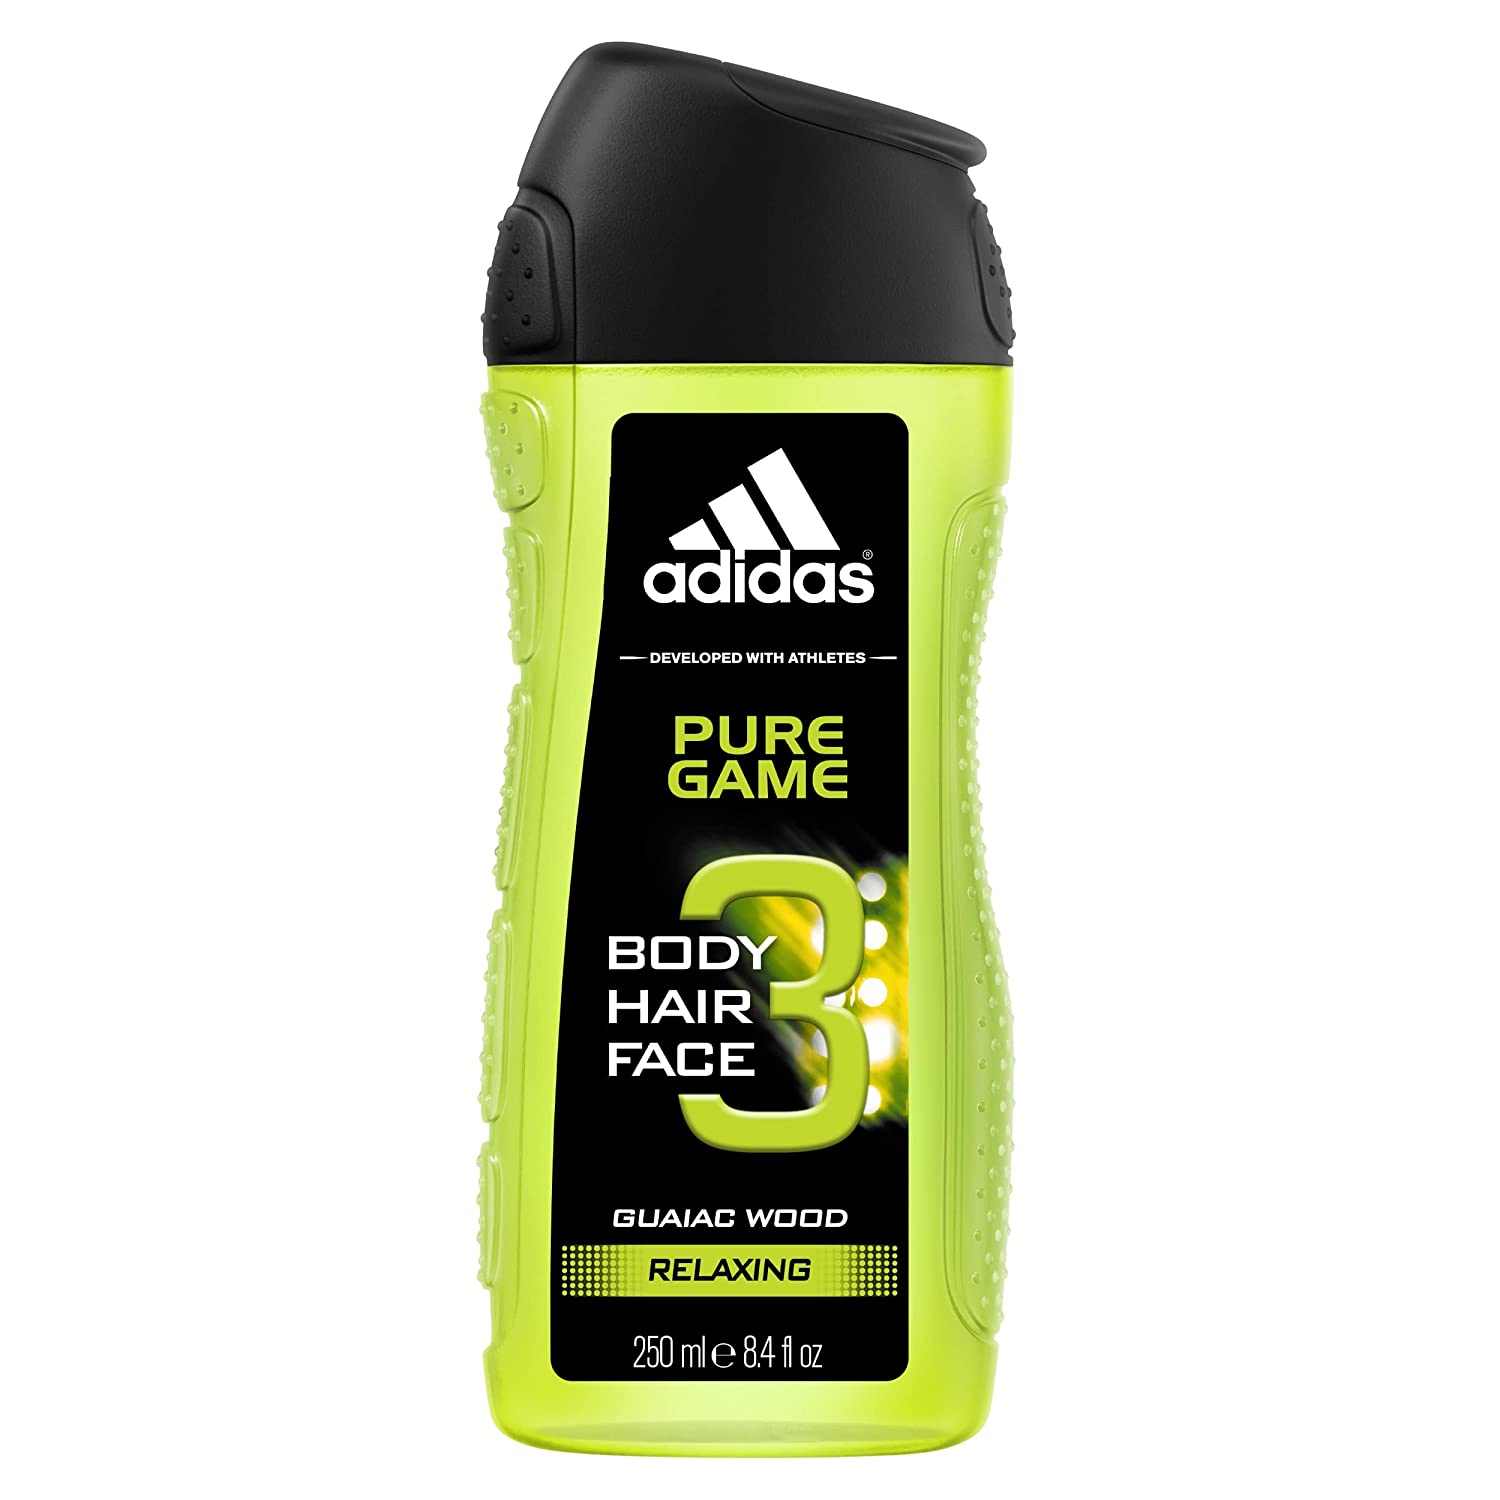 Adidas Pure Game 3 In 1 Body, Hair And Face Shower Gel, 250ml